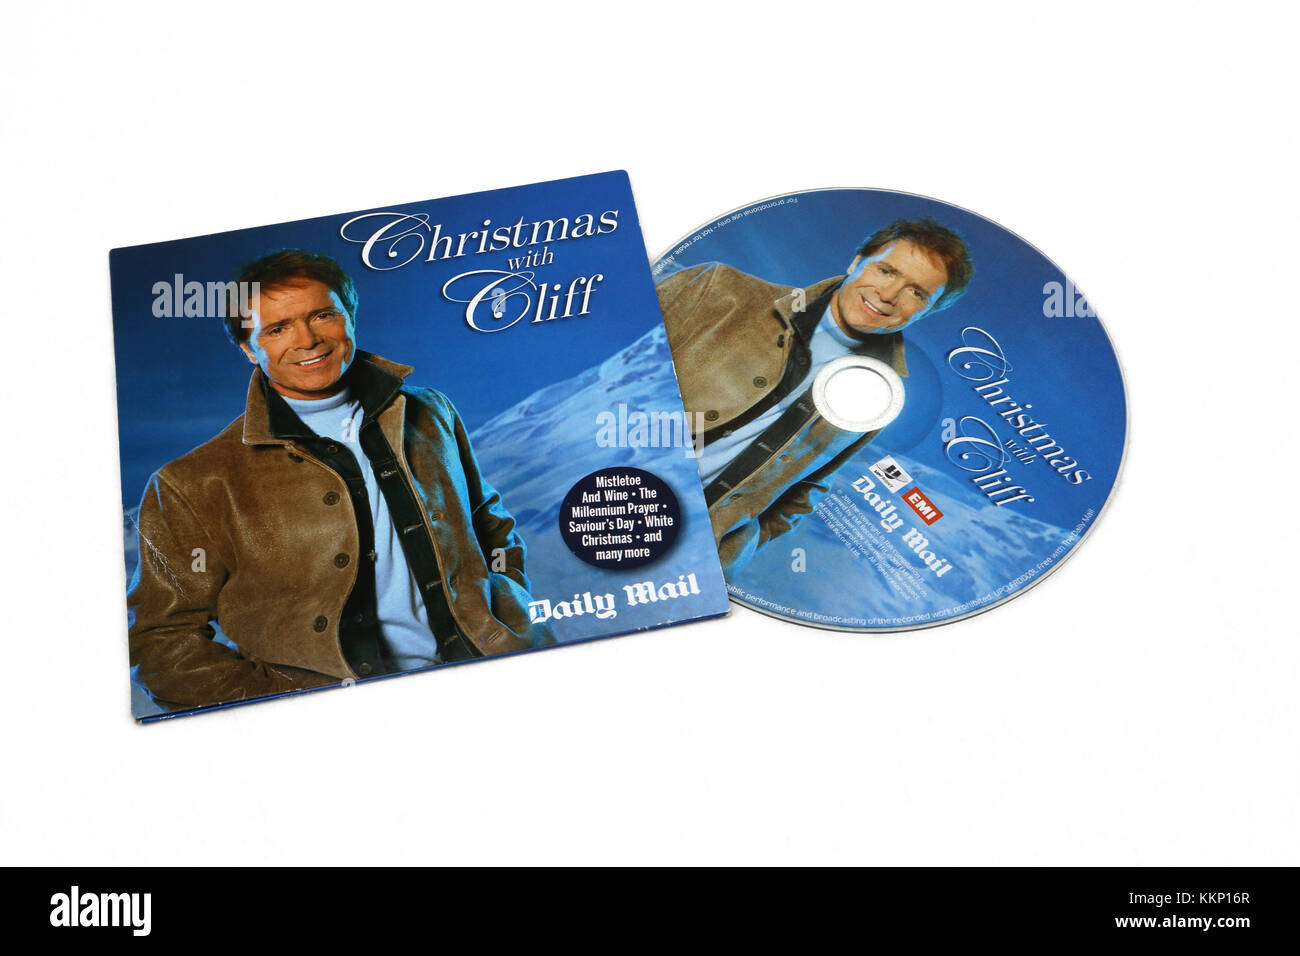 Christmas With Cliff - Cliff Richard CD Stock Photo: 167055695 - Alamy